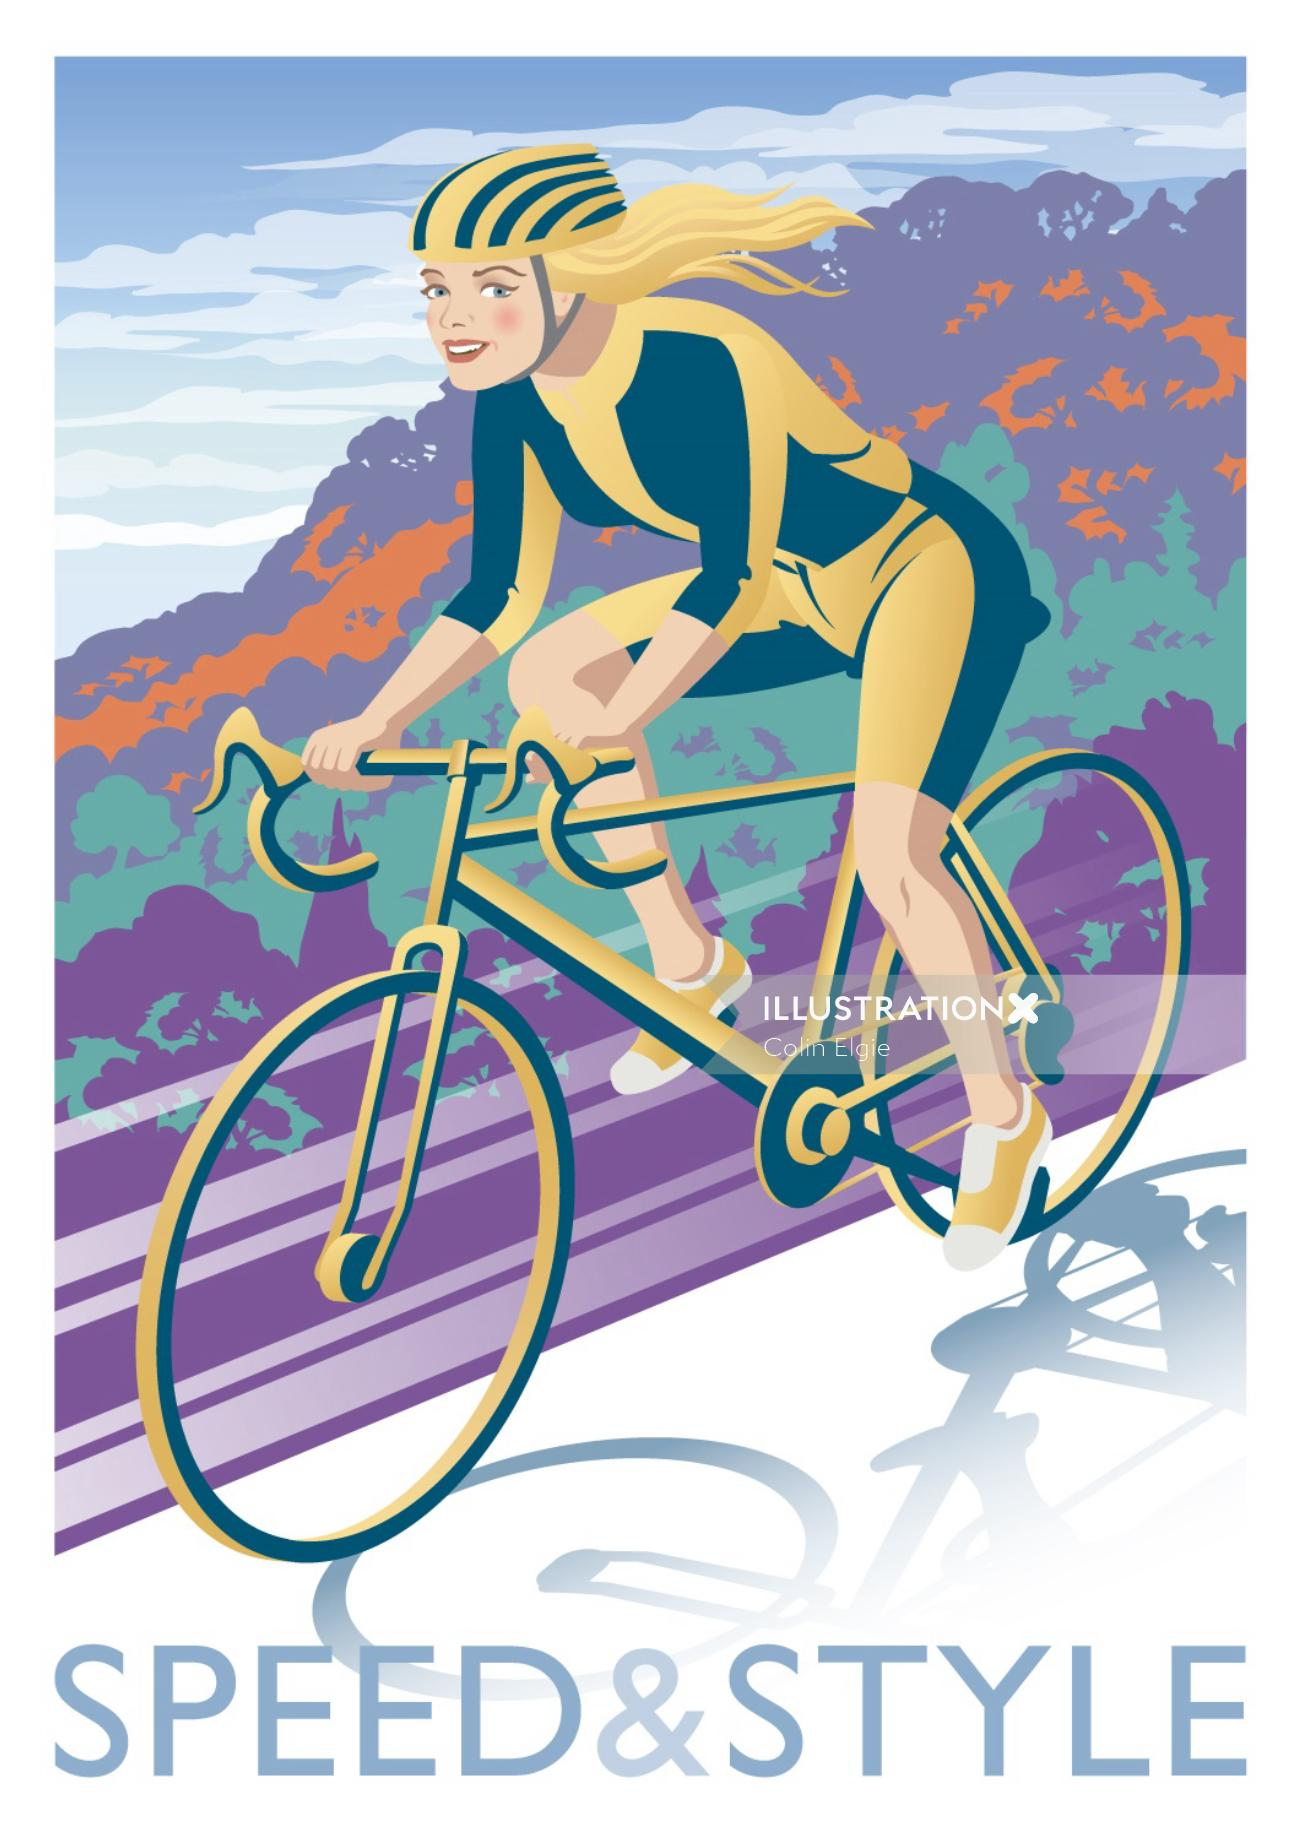 An illustration of a woman cycling